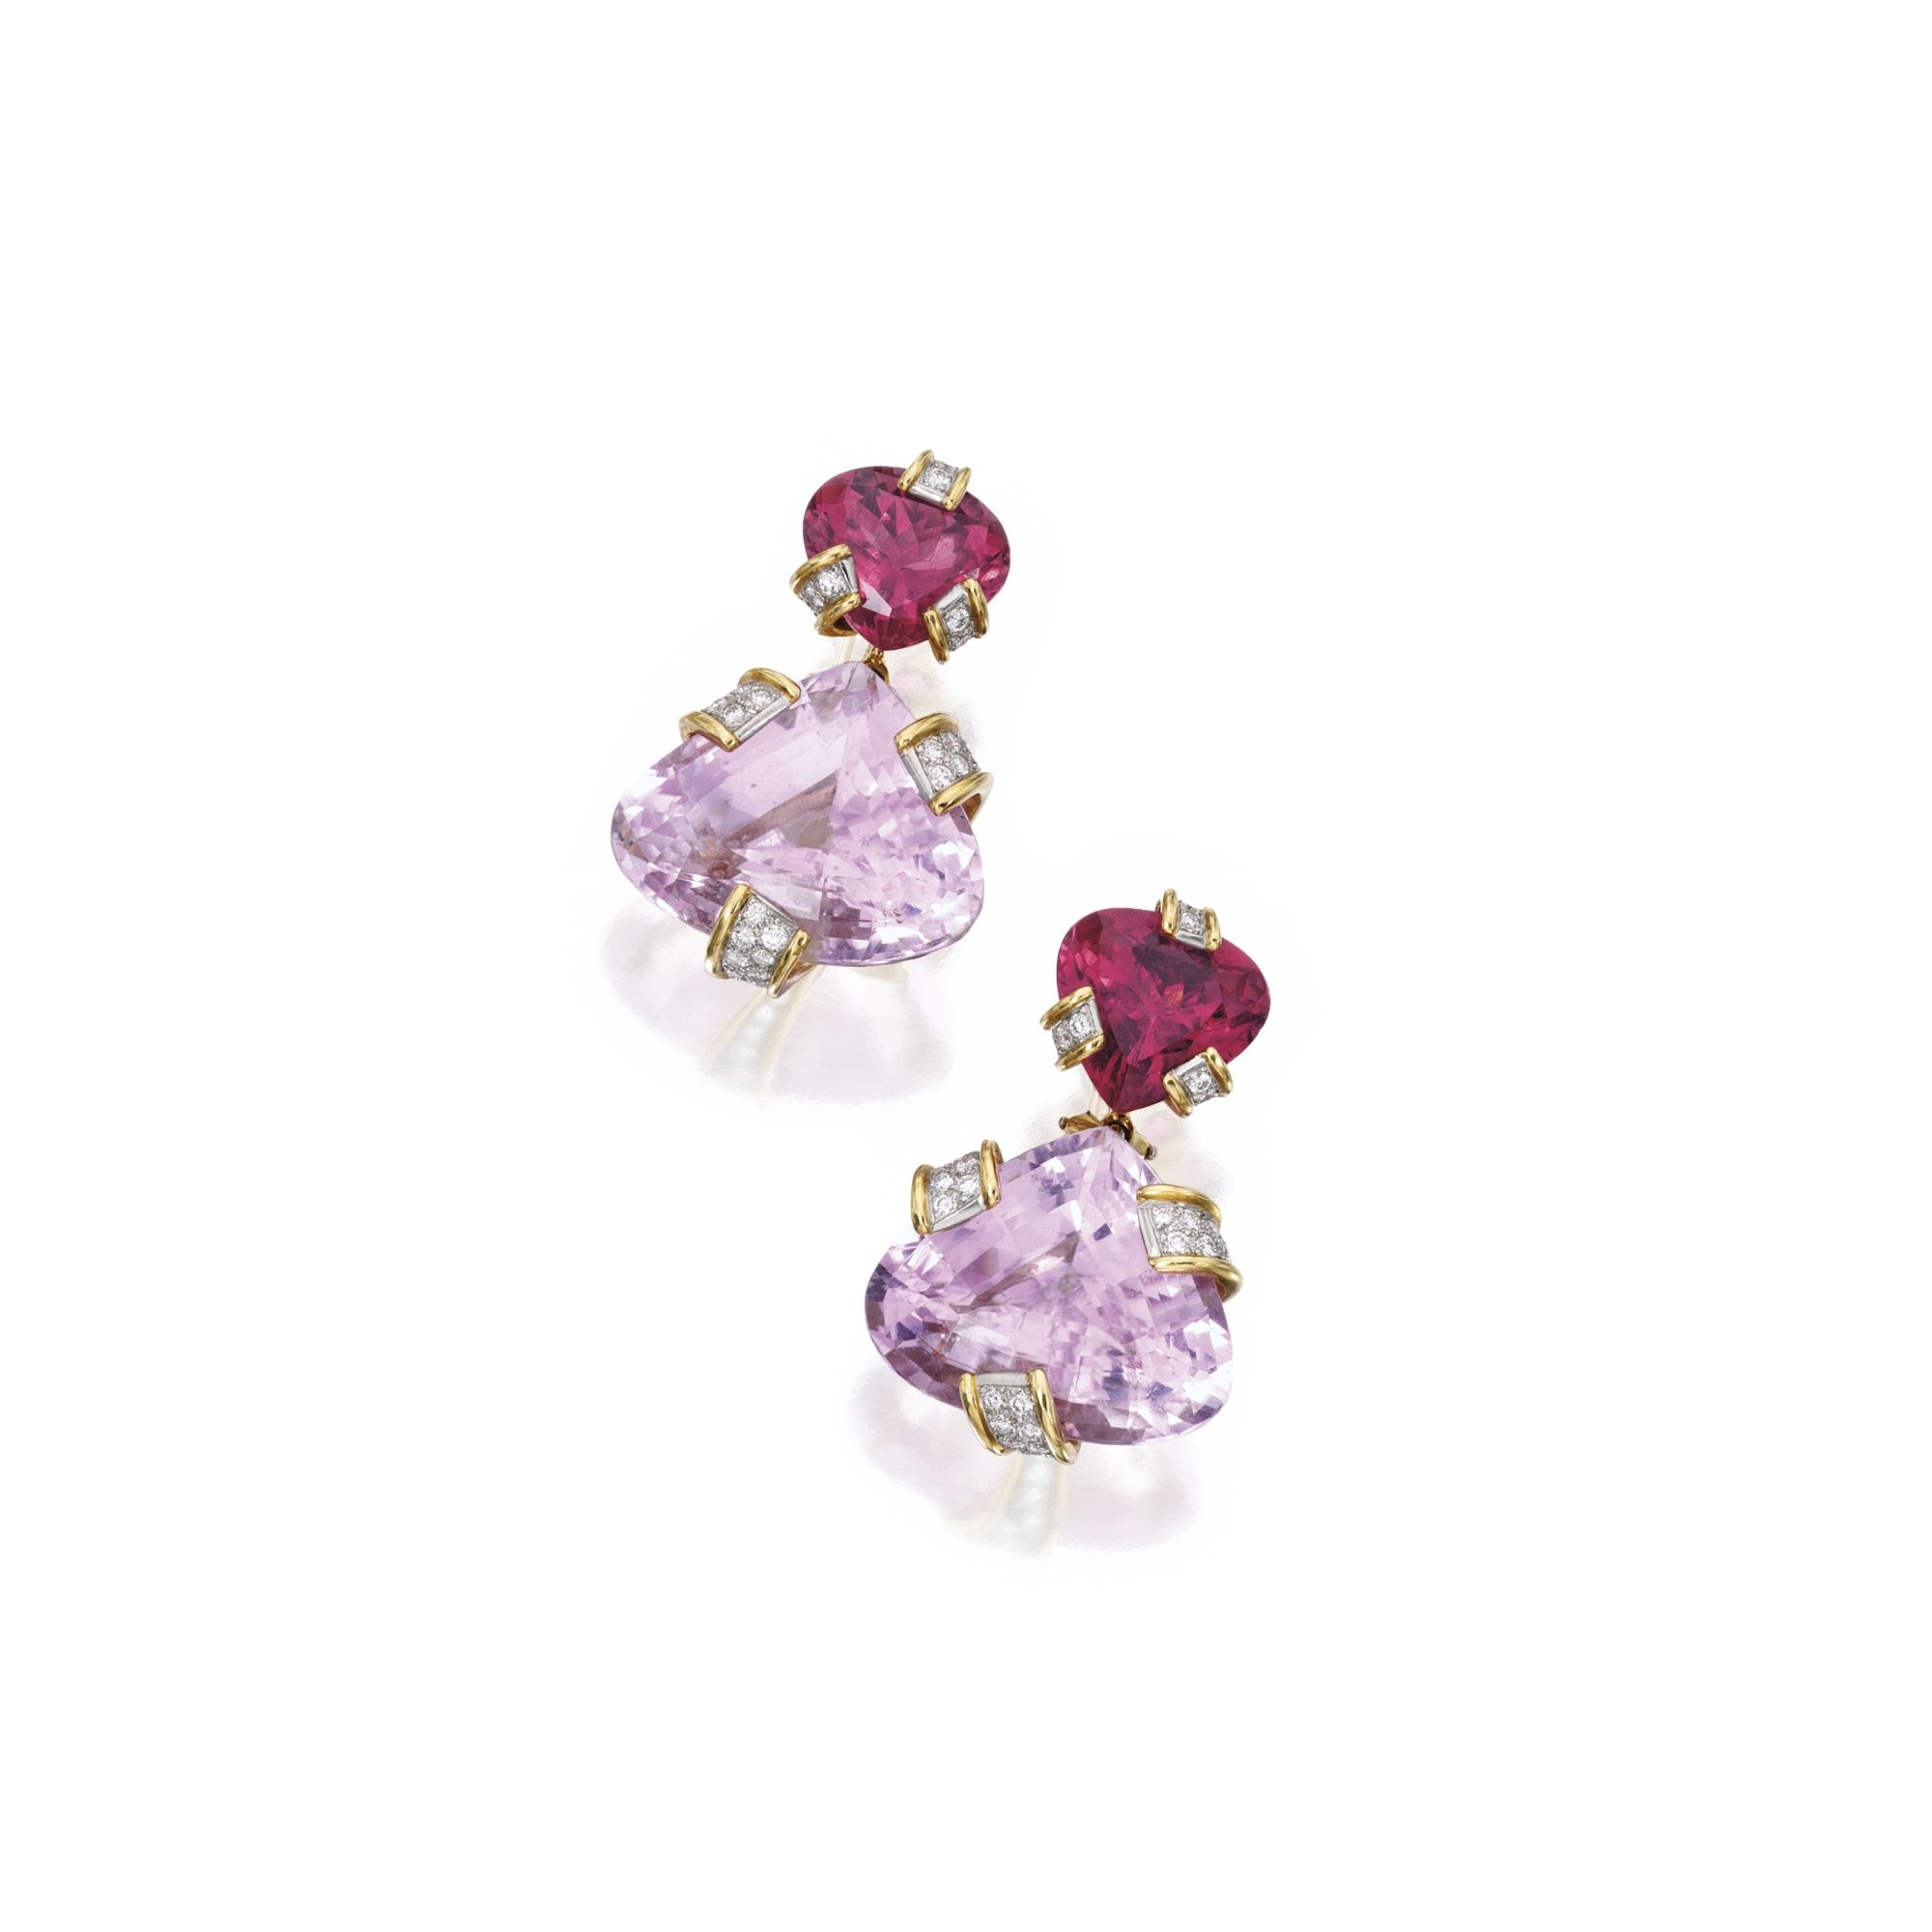 pin shapes earrings kunzite margherita pinterest burgener